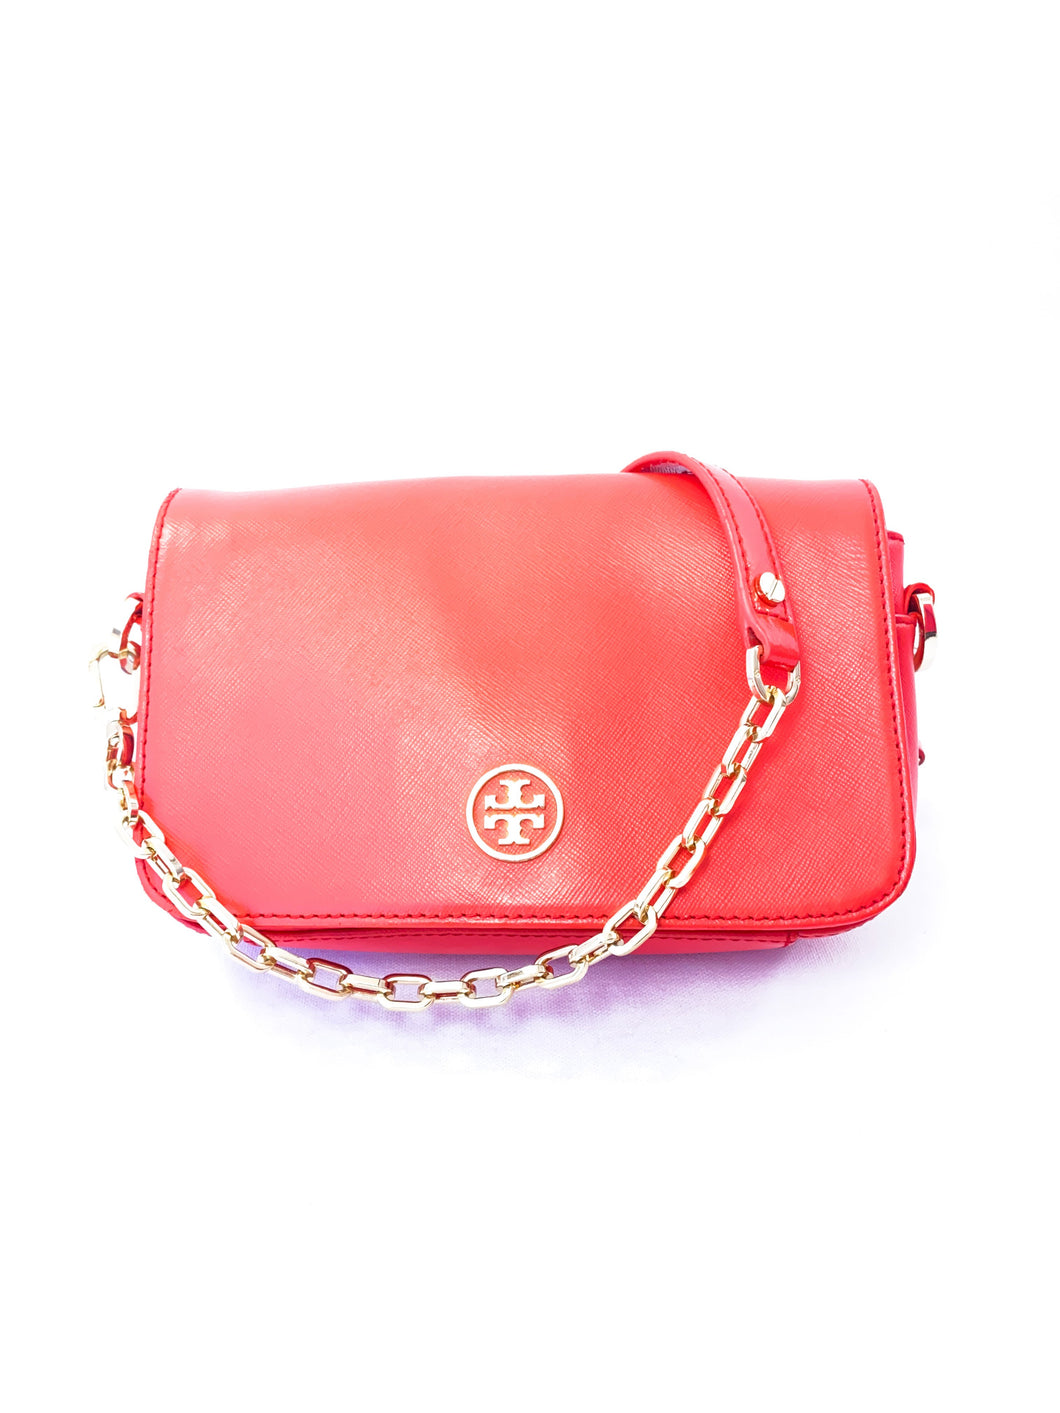 Tory Burch red orange leather crossbody - My Girlfriend's Wardrobe York Pa